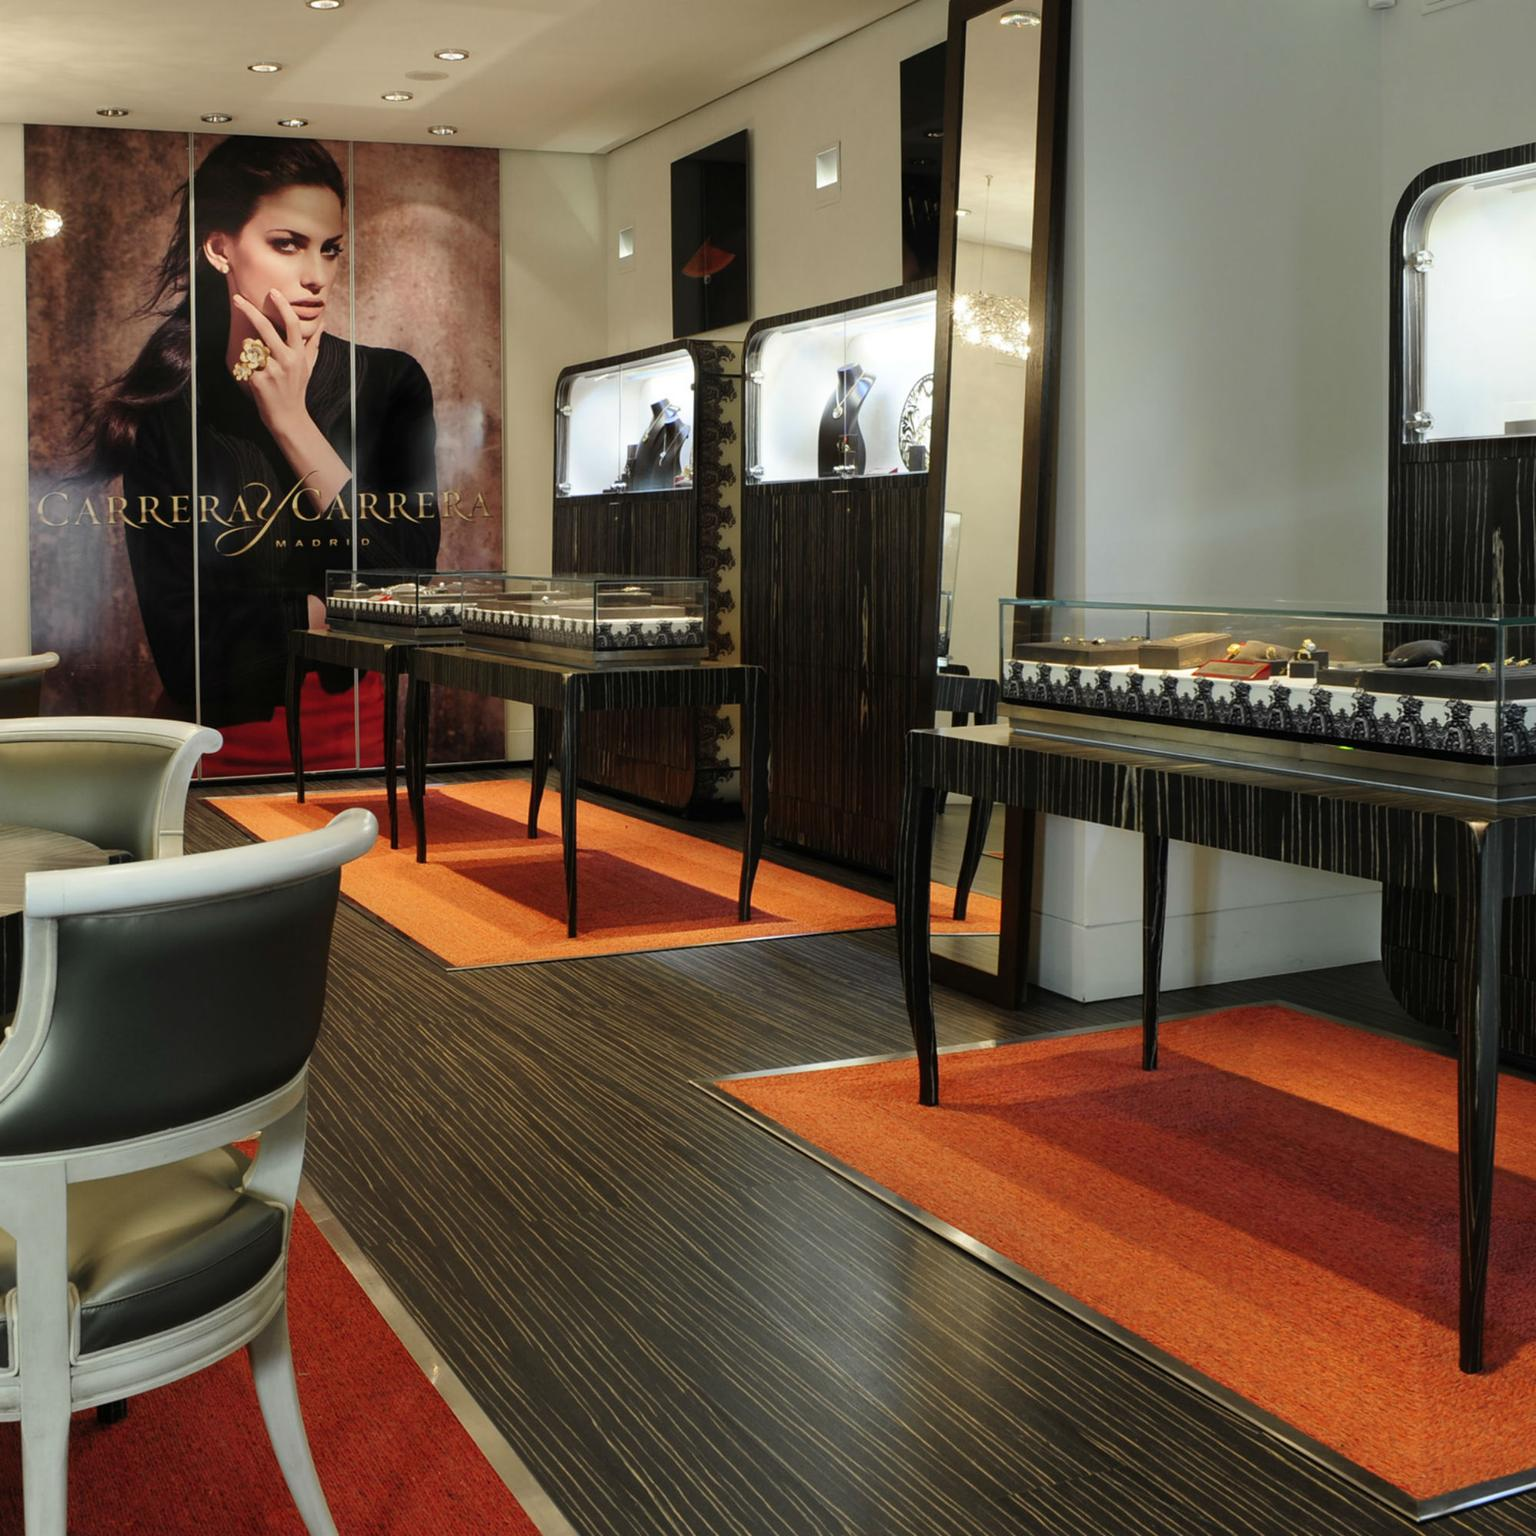 Carrera y Carrera boutique Madrid